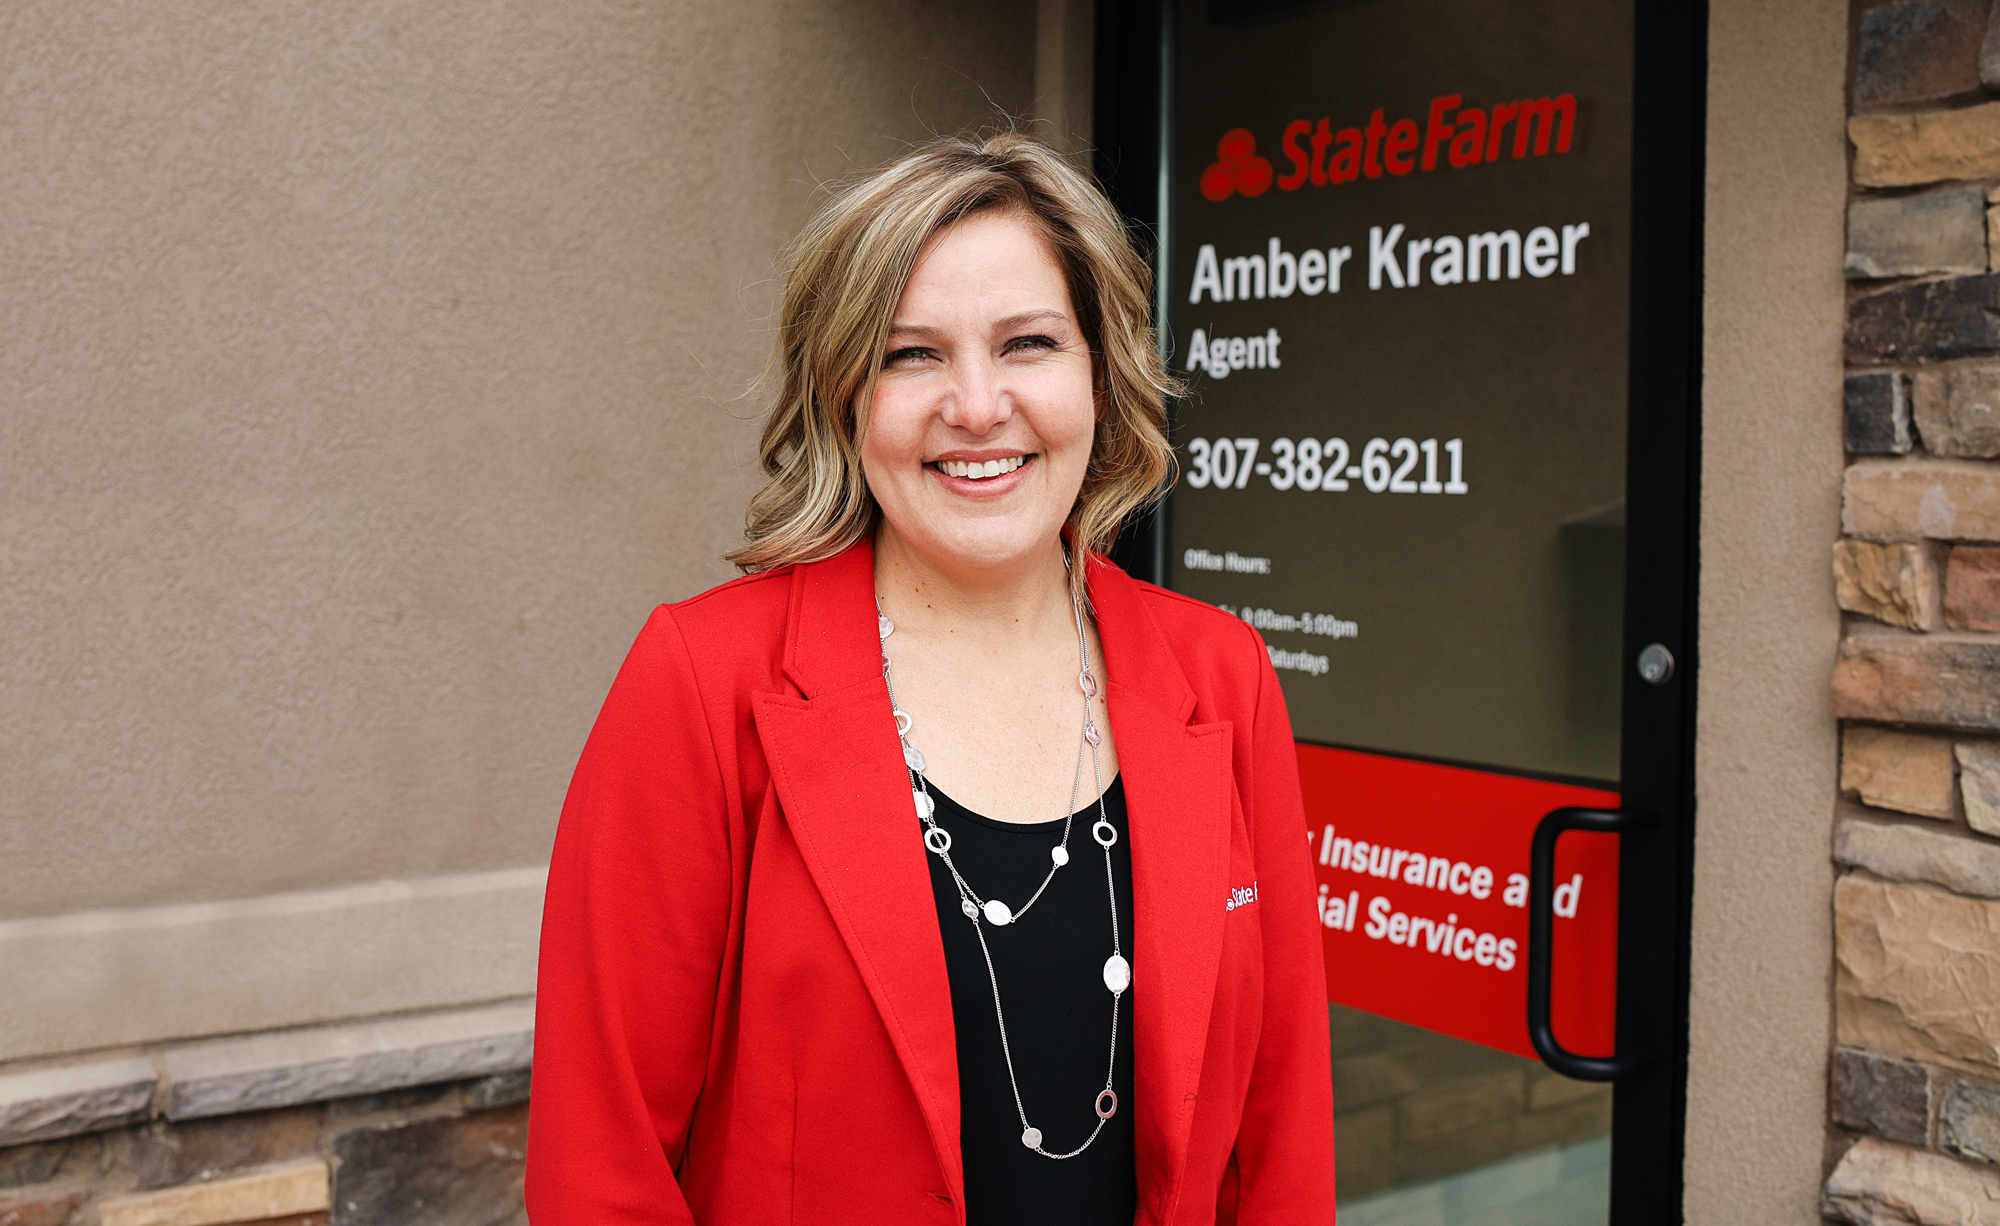 #HOMETOWN HUSTLE: Amber Kramer | State Farm Insurance